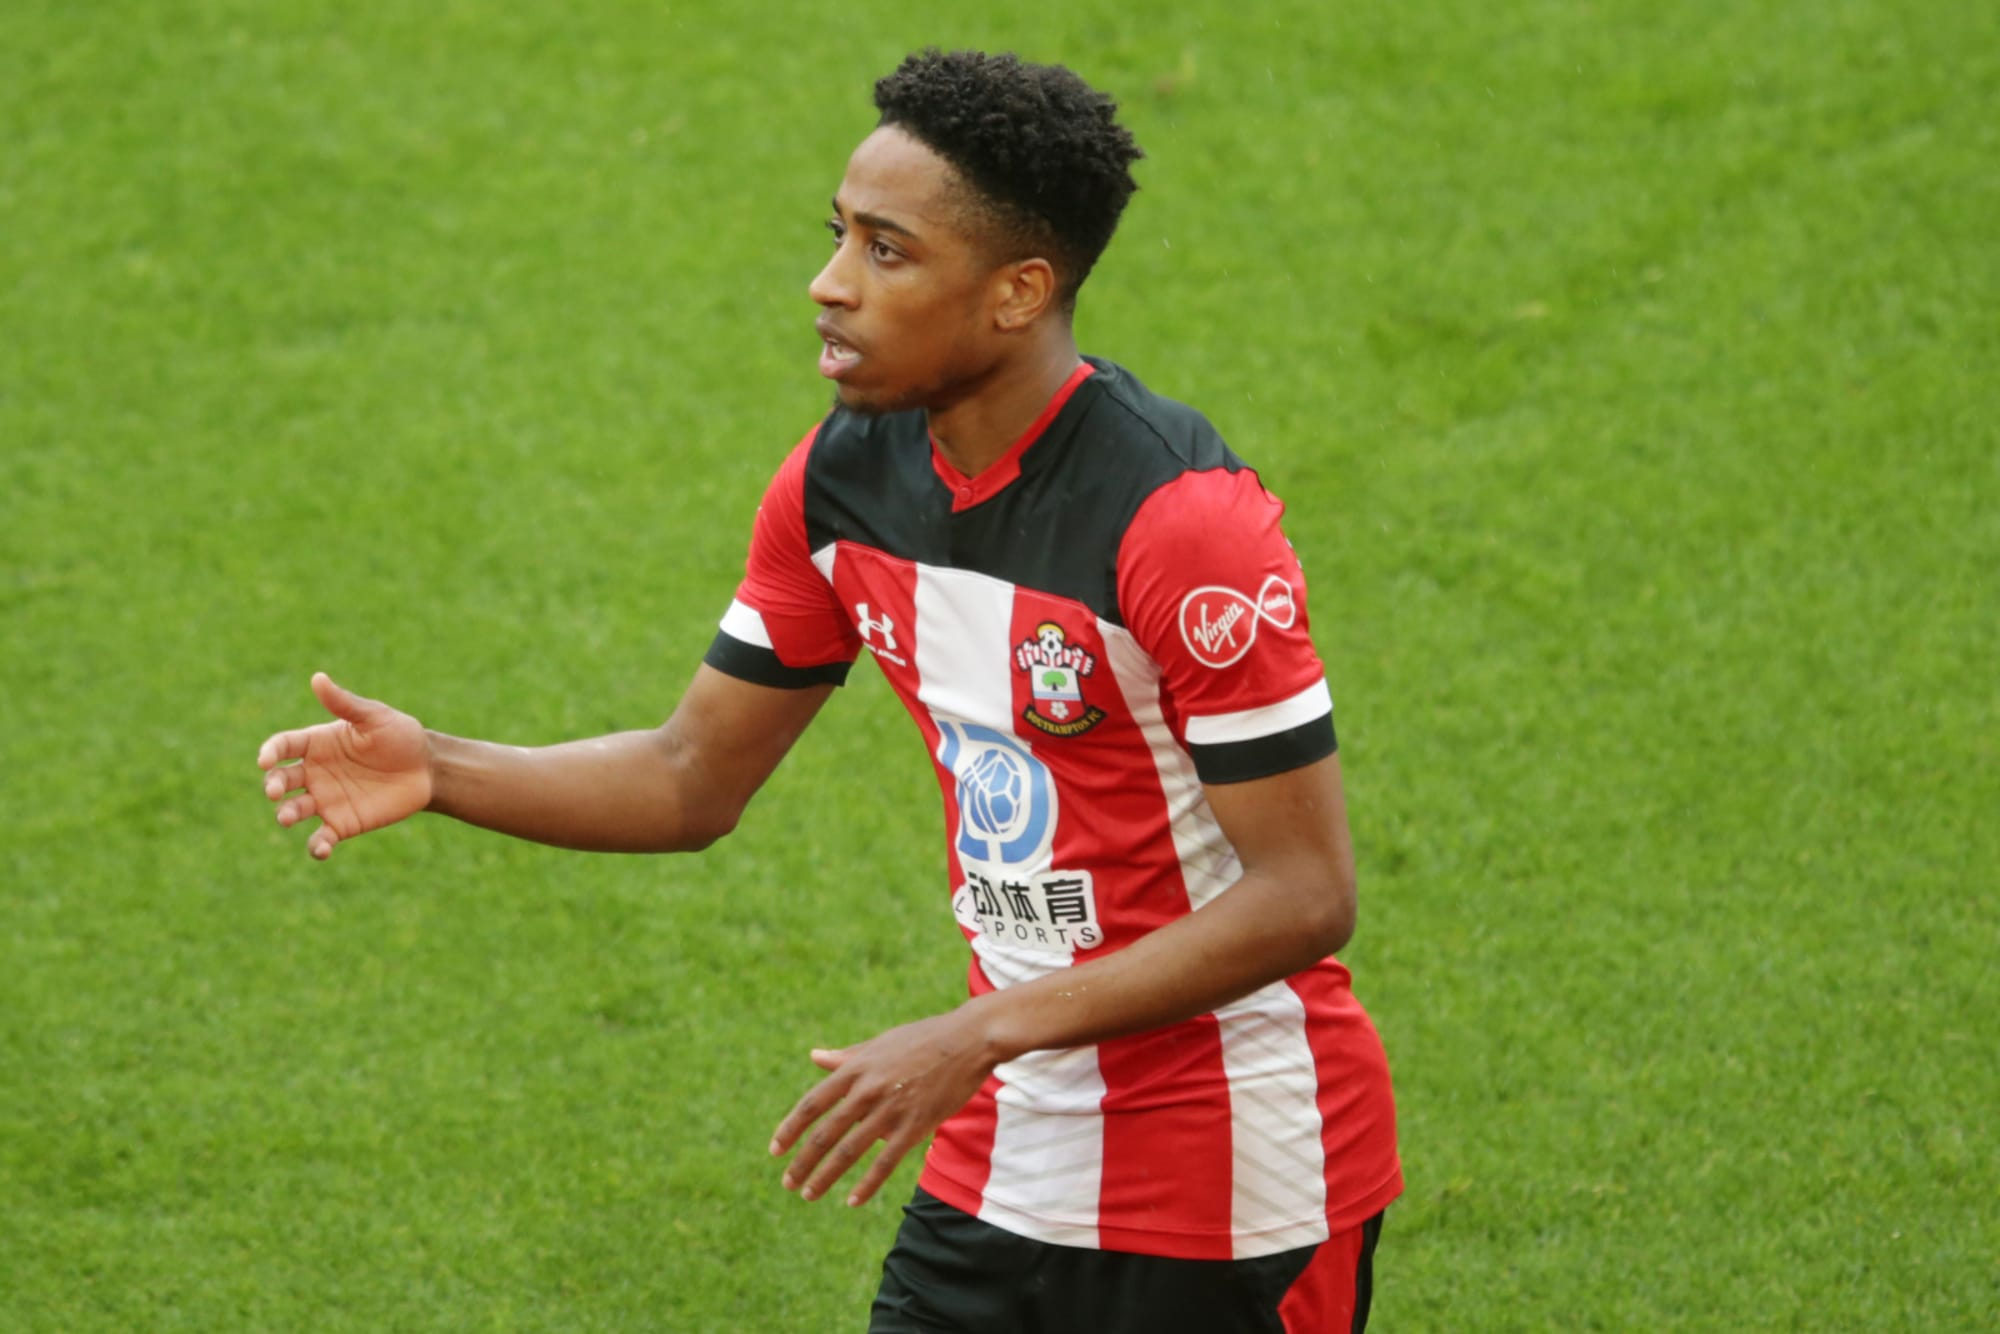 Southampton Saints Looking To Beef Up Their Defense With Youth